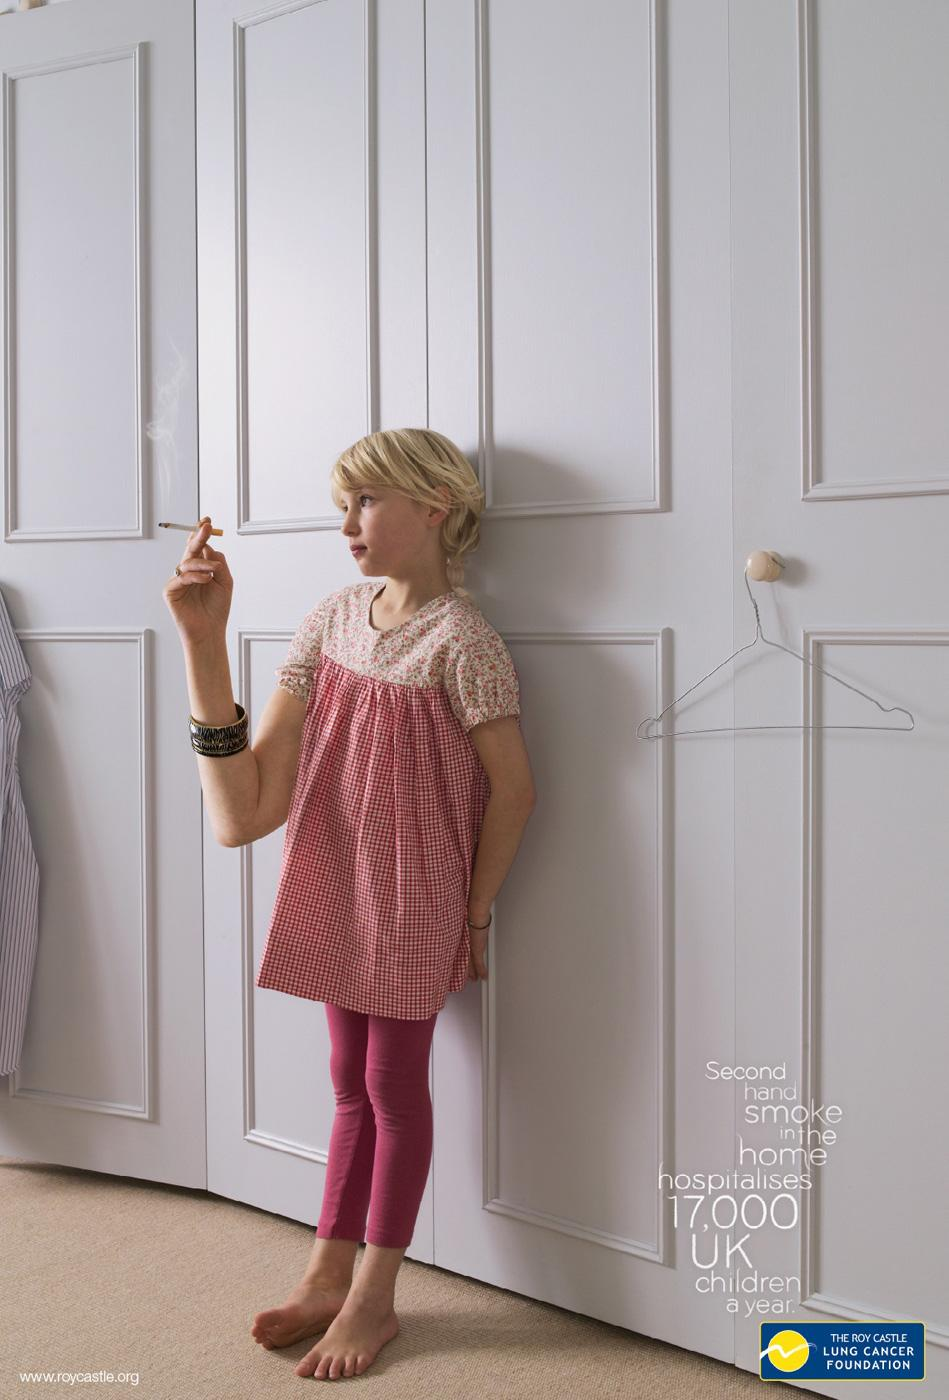 The Roy Castle Lung Cancer Foundation Print Ad -  Wardrobe